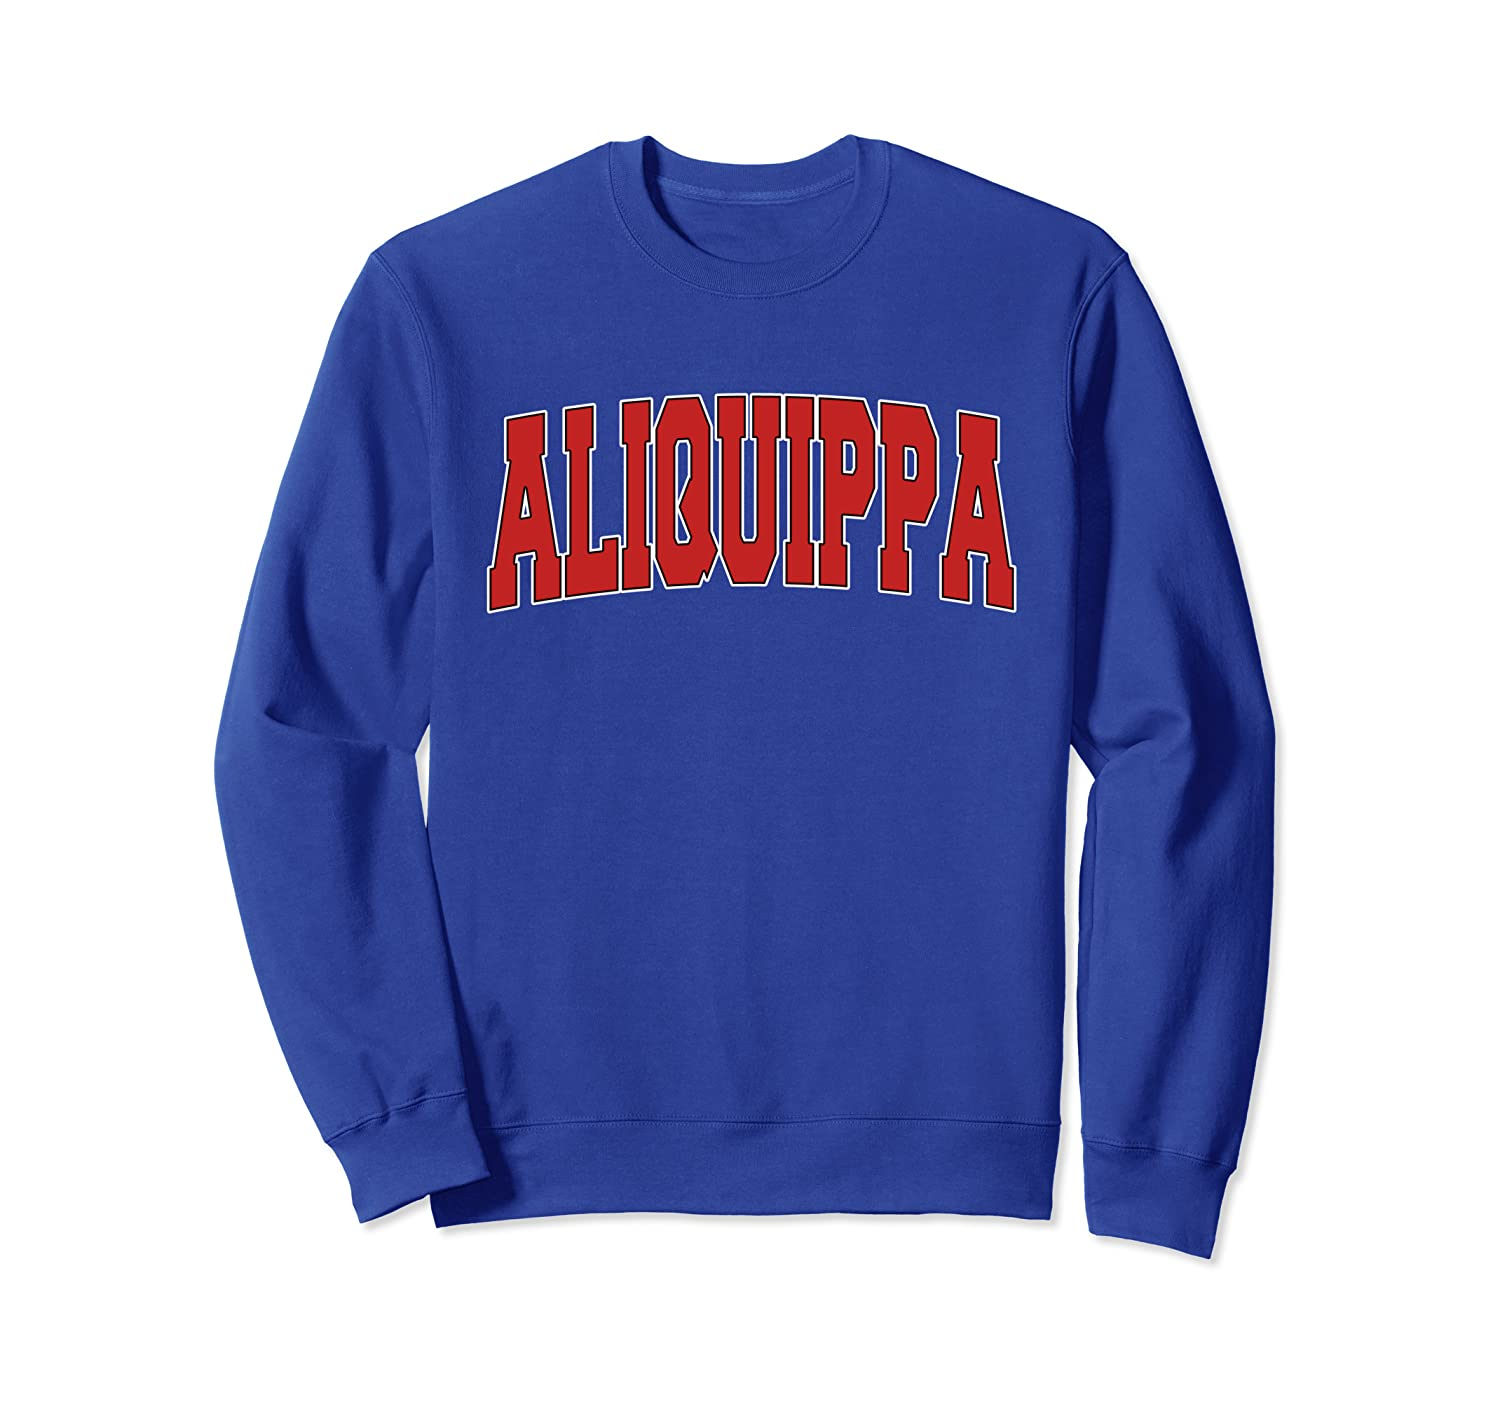 ALIQUIPPA PA PENNSYLVANIA Varsity Style USA Vintage Sports Sweatshirt-TH